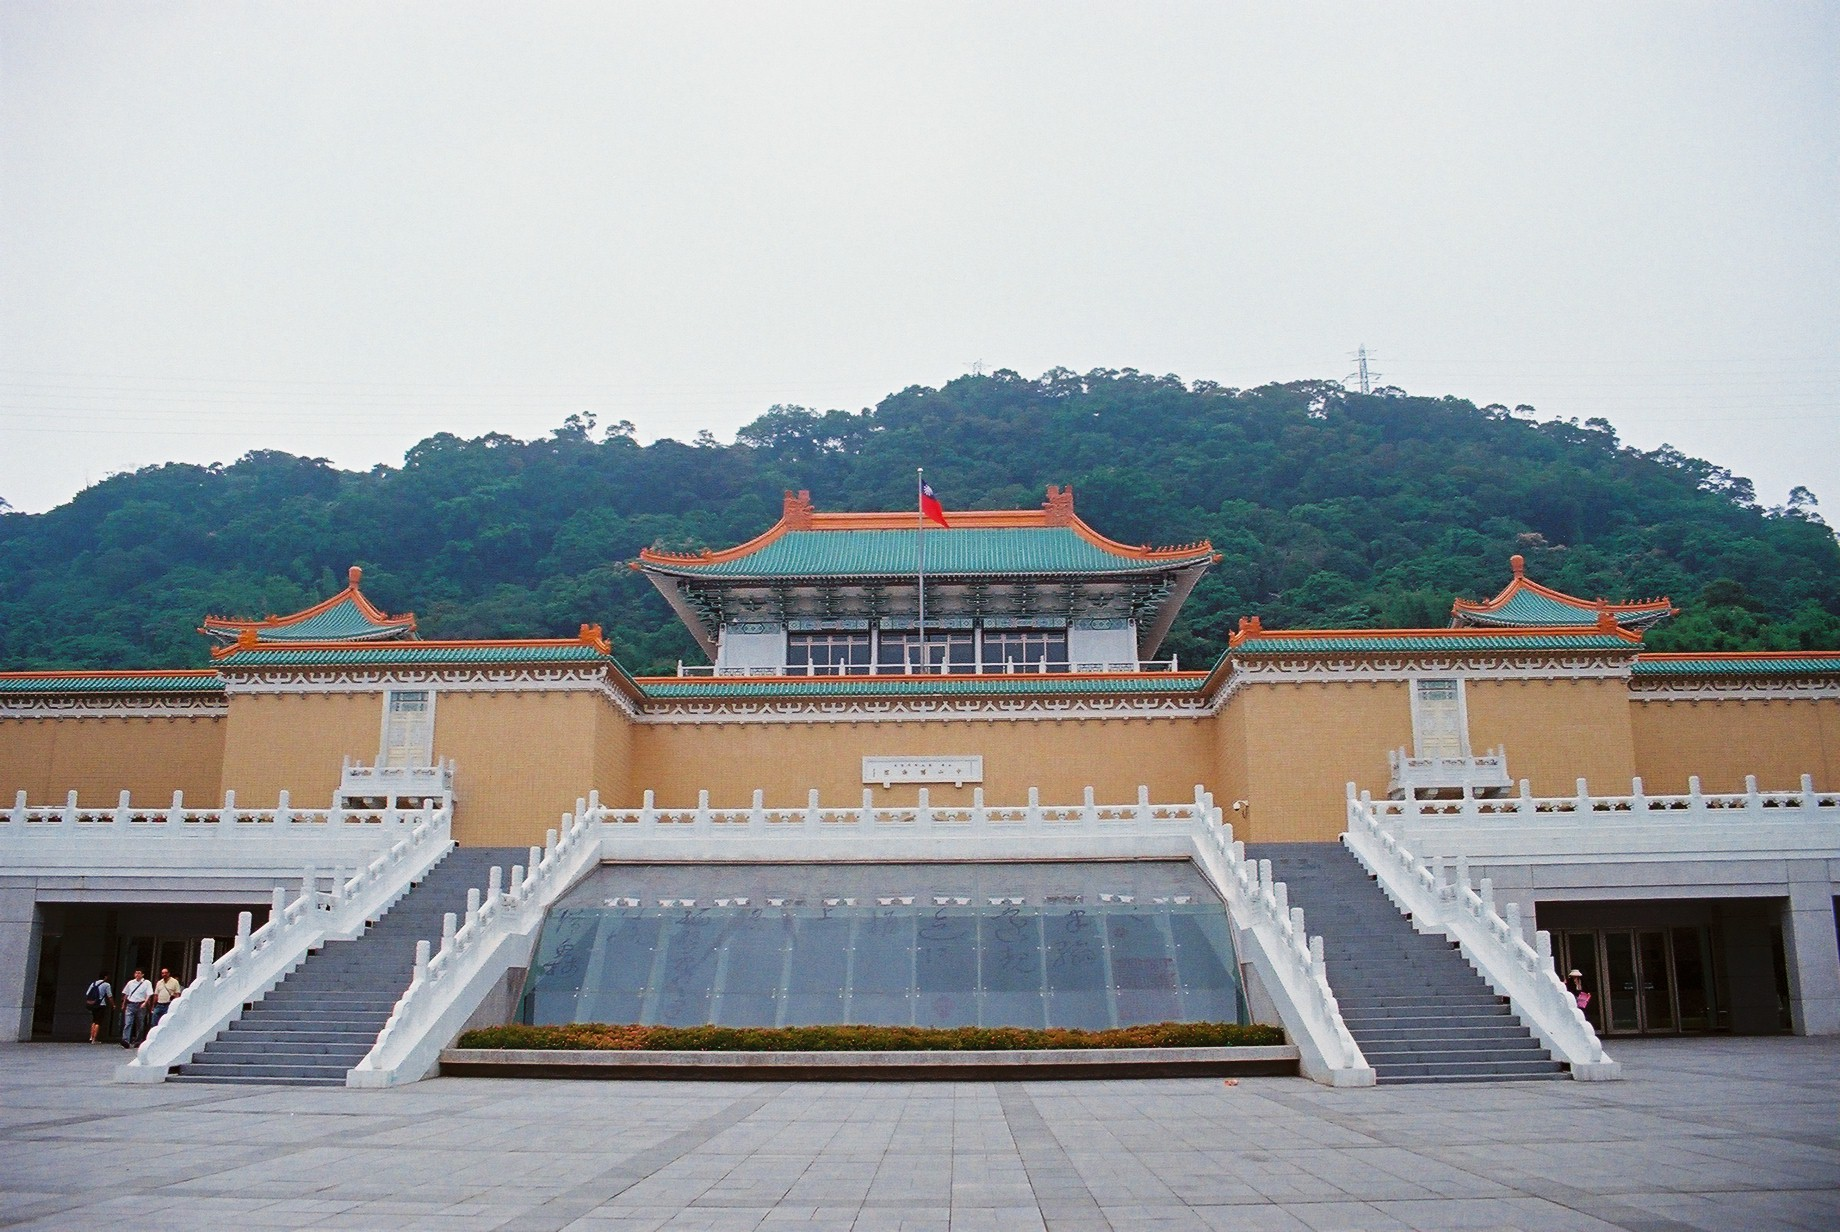 Taiwan: The National Palace Museum & The Grand Hotel (film ...